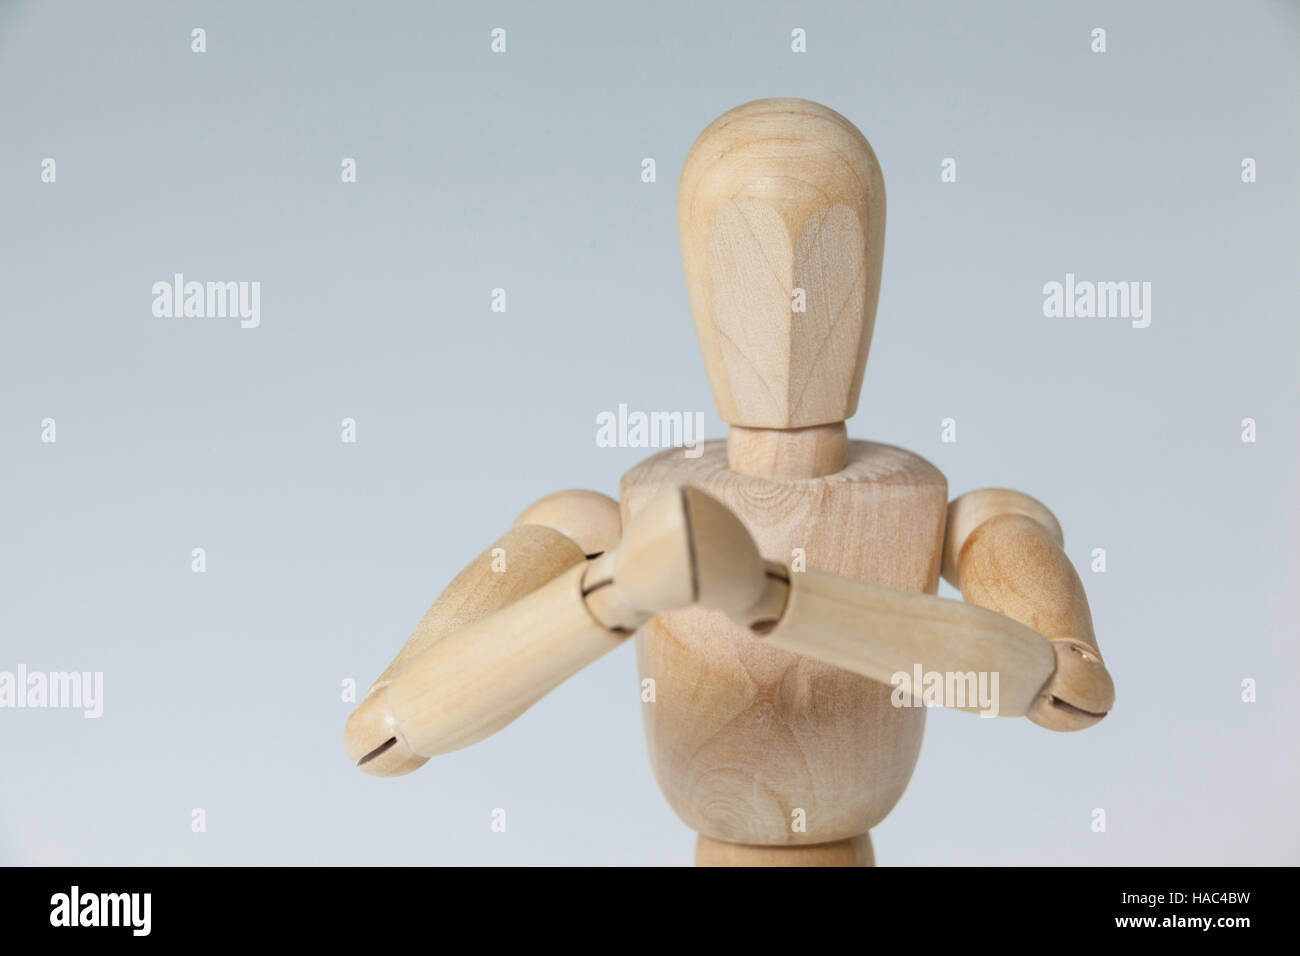 Wooden figurine with both hands joined - Stock Image